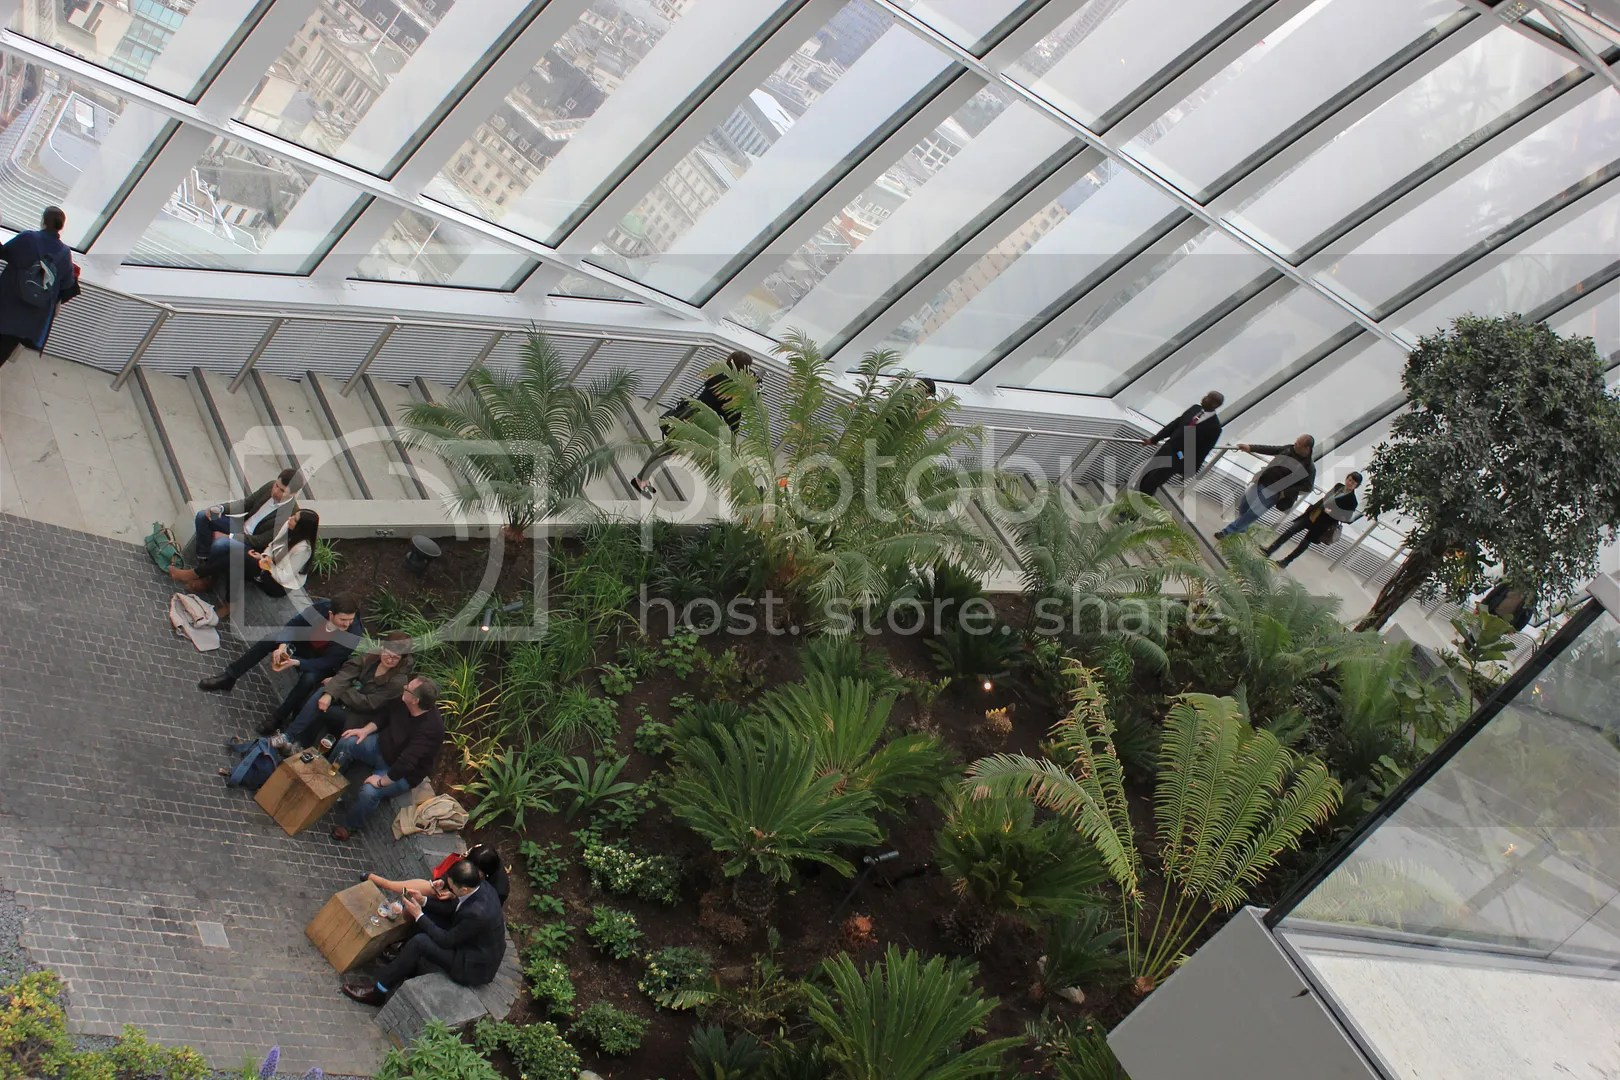 Personable The Walkie Talkie Sky Garden Central London  Visiting Houses  With Foxy A Condition Of Building A Skyscraper Outside Of The Designated Highrise  Area In The City Of London Was To Include A Public Space To Be Entered  Free Of  With Awesome Gumtree Perth Home And Garden Also Garden Lettuce Bitter In Addition Garden Arch Bench And Jasmine Garden Burgess Hill As Well As Slim Trees For Small Gardens Additionally Boston Public Garden From Visitinghousesandgardenscom With   Foxy The Walkie Talkie Sky Garden Central London  Visiting Houses  With Awesome A Condition Of Building A Skyscraper Outside Of The Designated Highrise  Area In The City Of London Was To Include A Public Space To Be Entered  Free Of  And Personable Gumtree Perth Home And Garden Also Garden Lettuce Bitter In Addition Garden Arch Bench From Visitinghousesandgardenscom